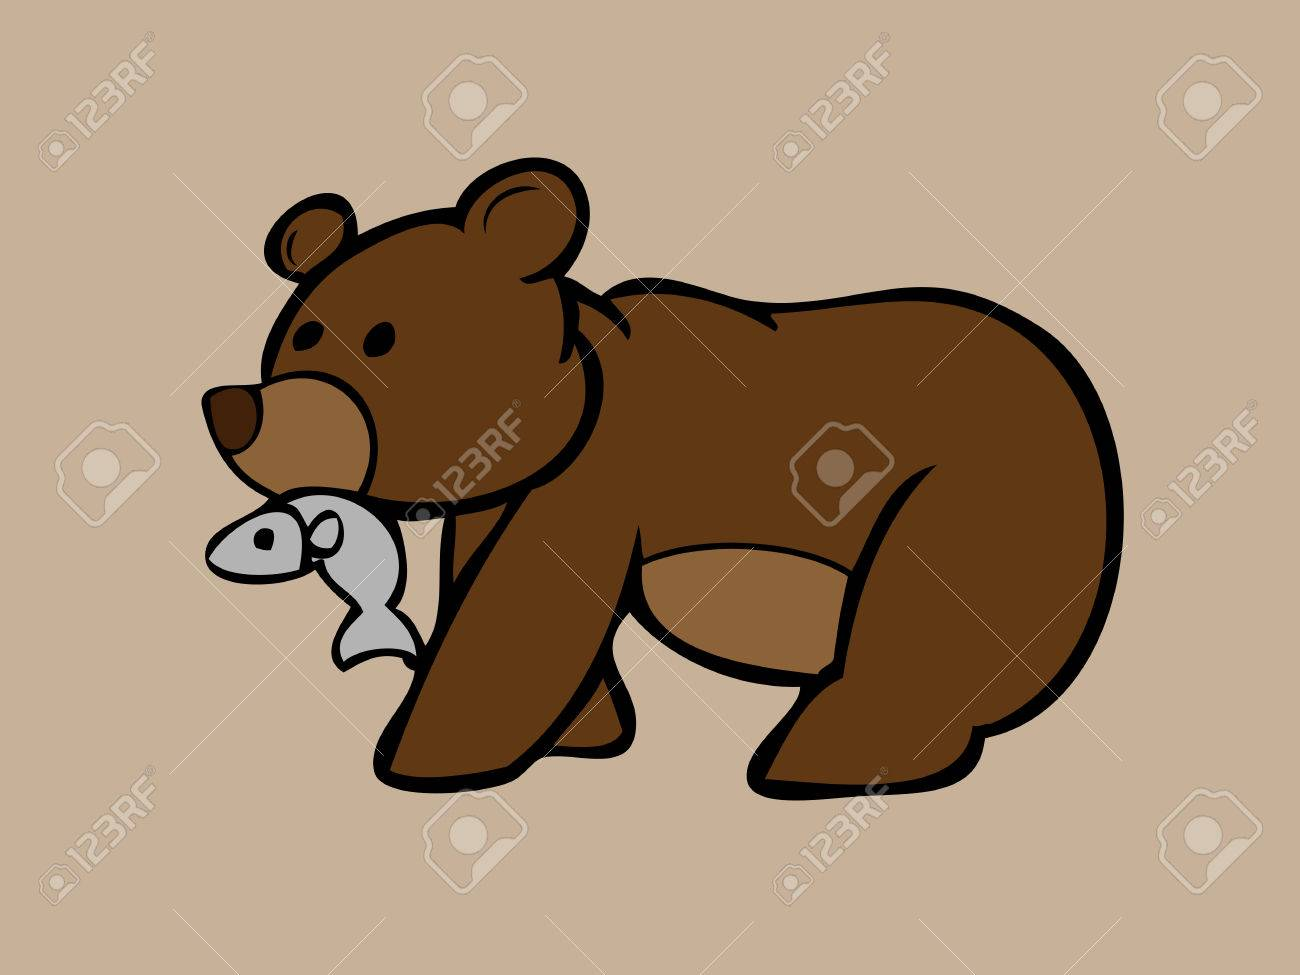 Brown Bear Catching Fish In Mouth Royalty Free Cliparts Vectors